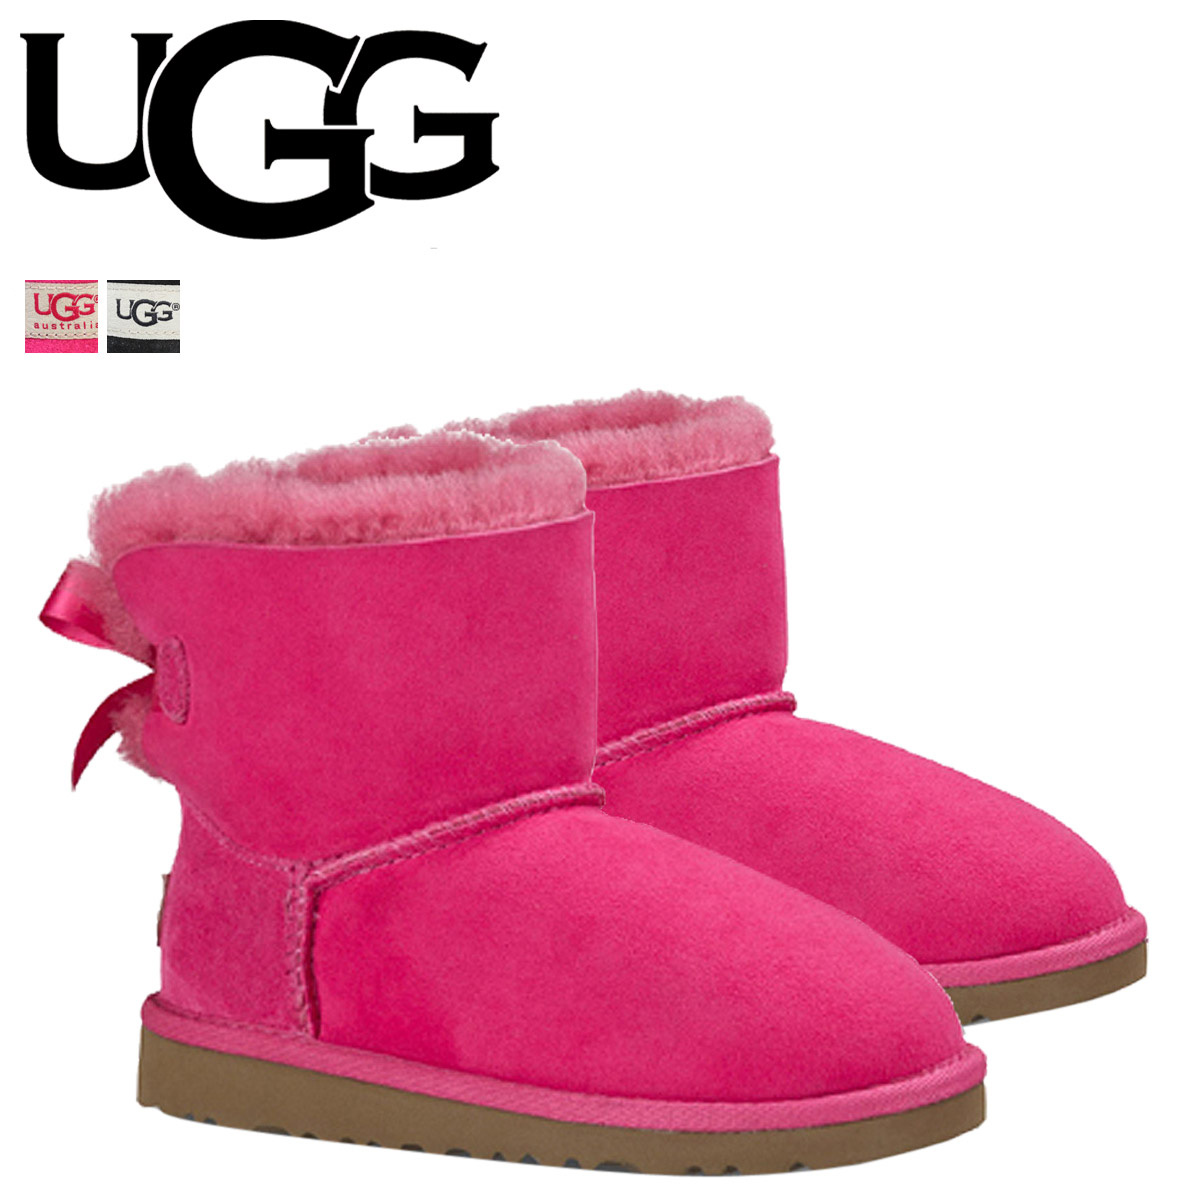 pink classic ugg boots